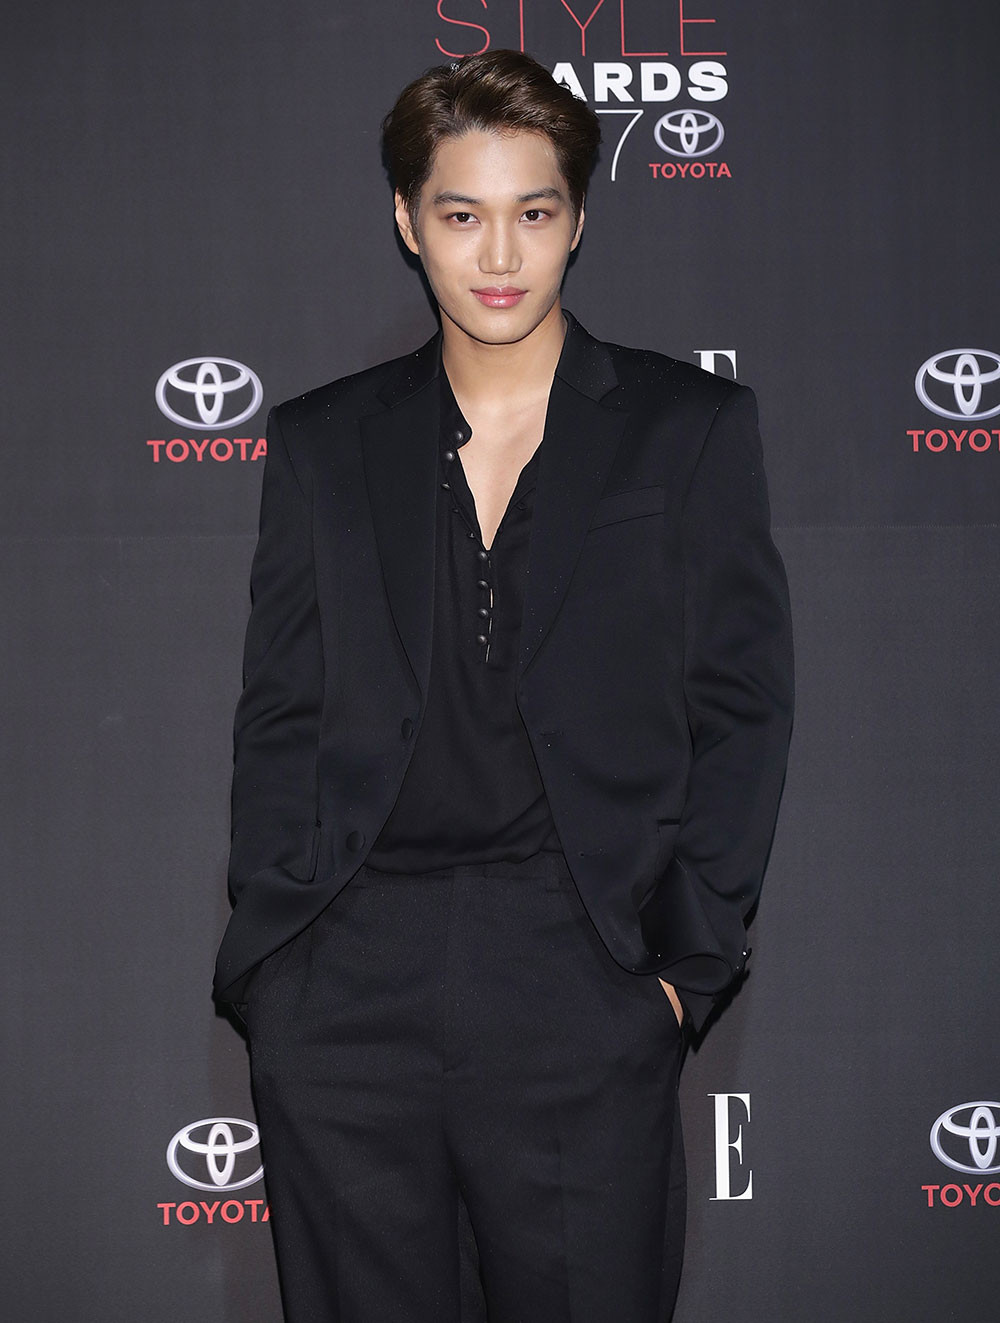 Solo: It's Official: EXO's Kai Is Making His Solo Debut Really